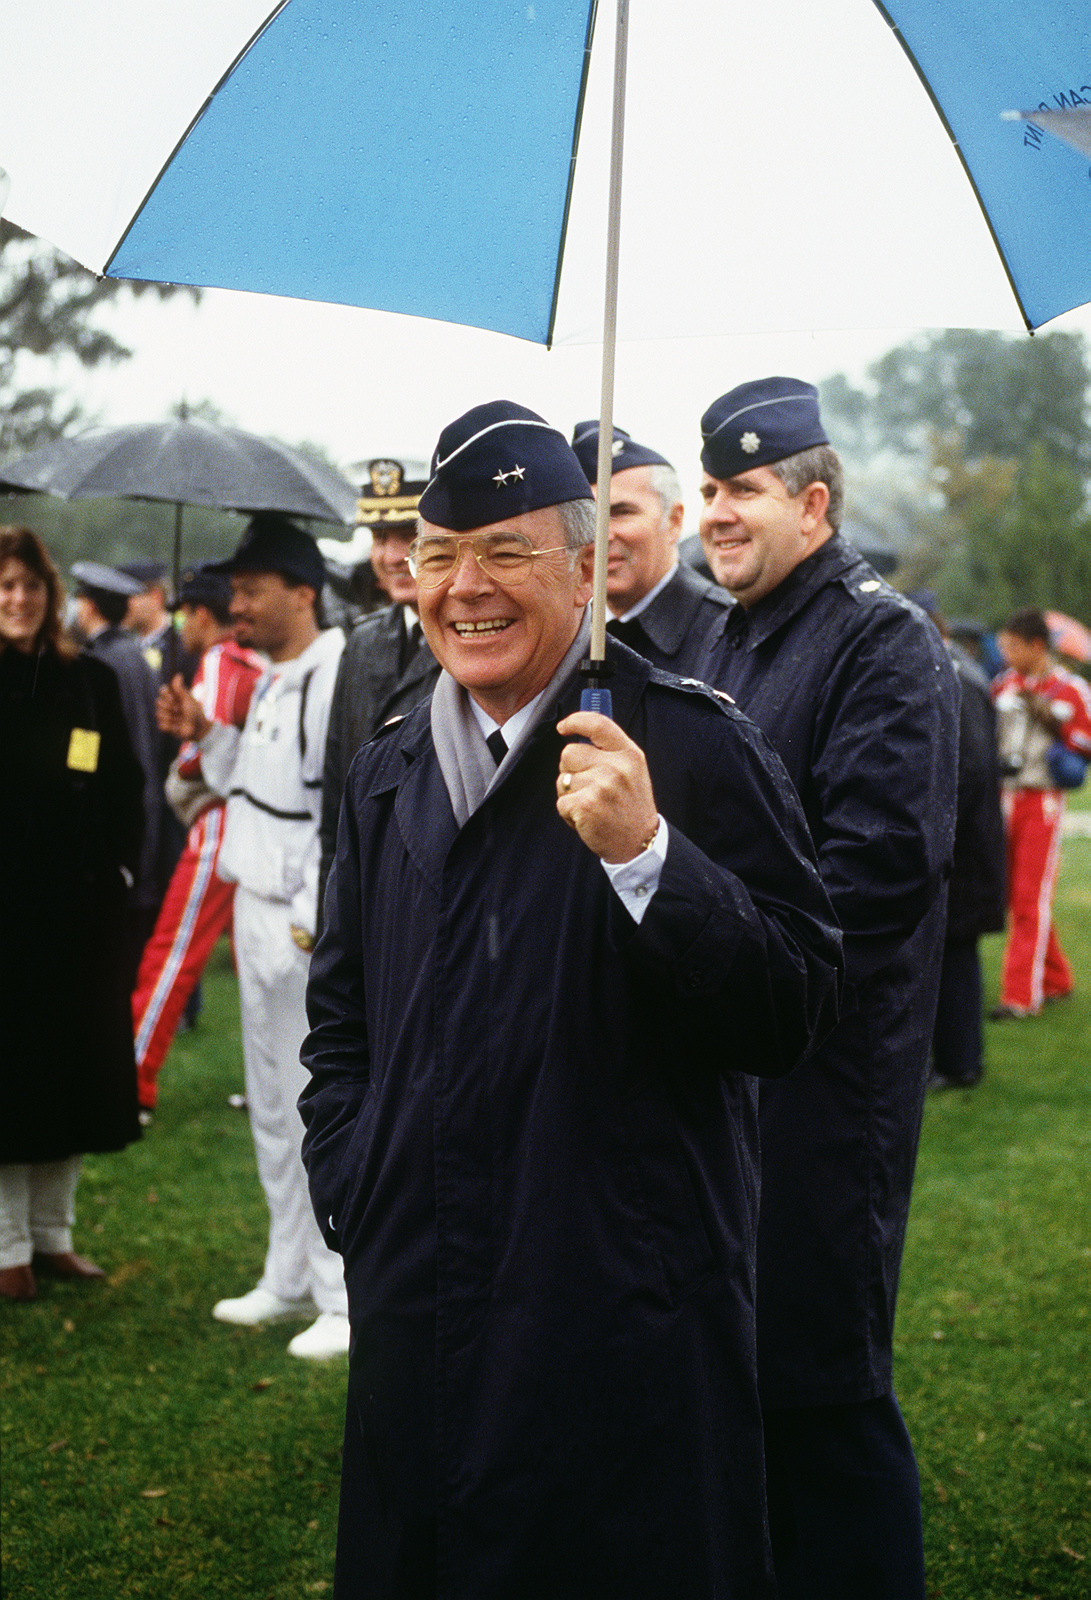 Major General (MGEN) Clifford H. Rees Jr., commander, Air Defense Weapons Center, Tactical Air Command, observes races during the 1988 Conseil International Du Sport Militaire's Cross Country Championship (CISM)